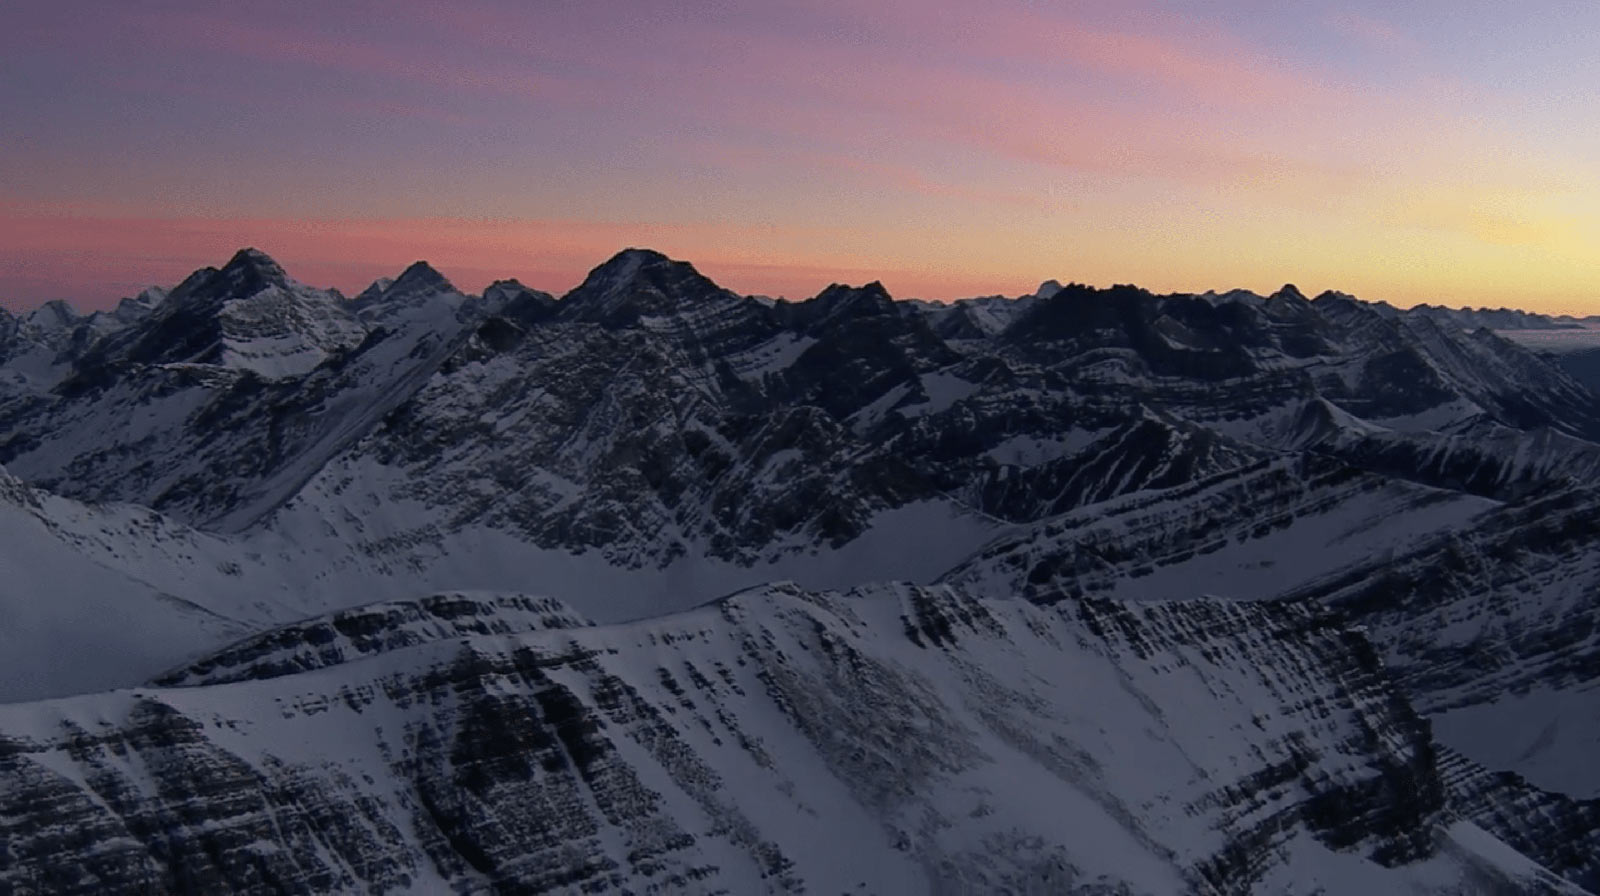 Sunrise over the Canadian Rockies